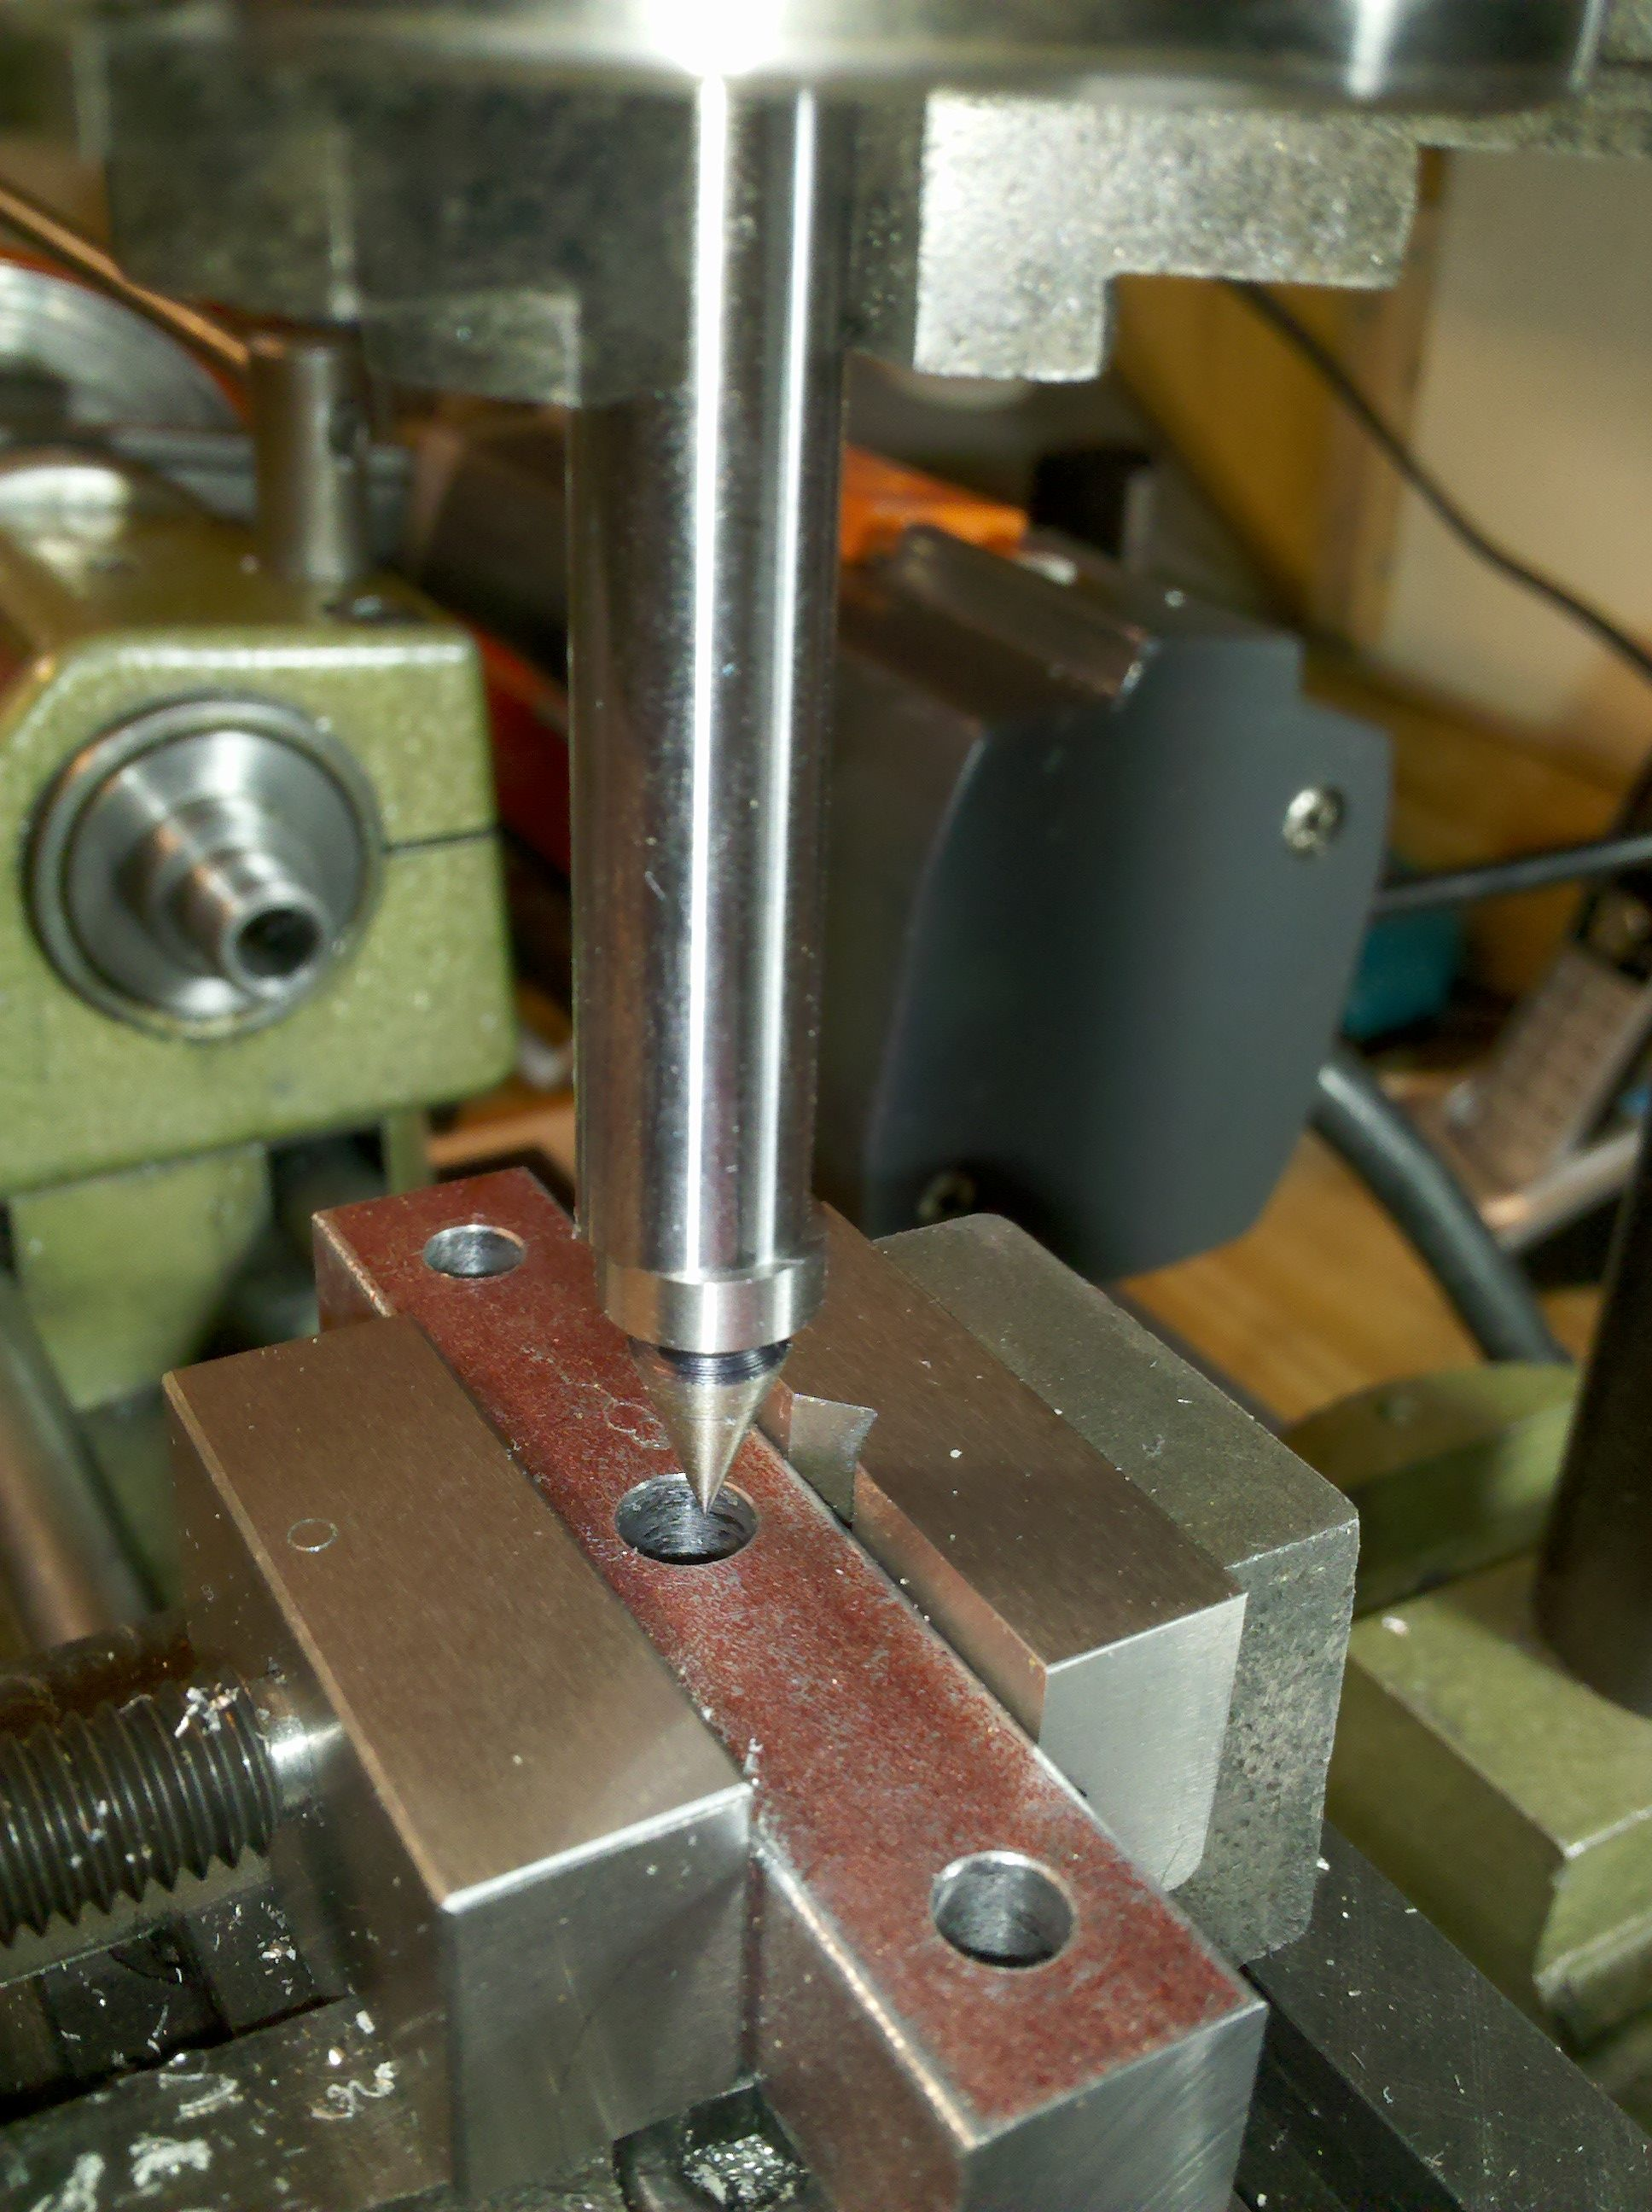 Using a Starrett center finder to align holes before reaming to size